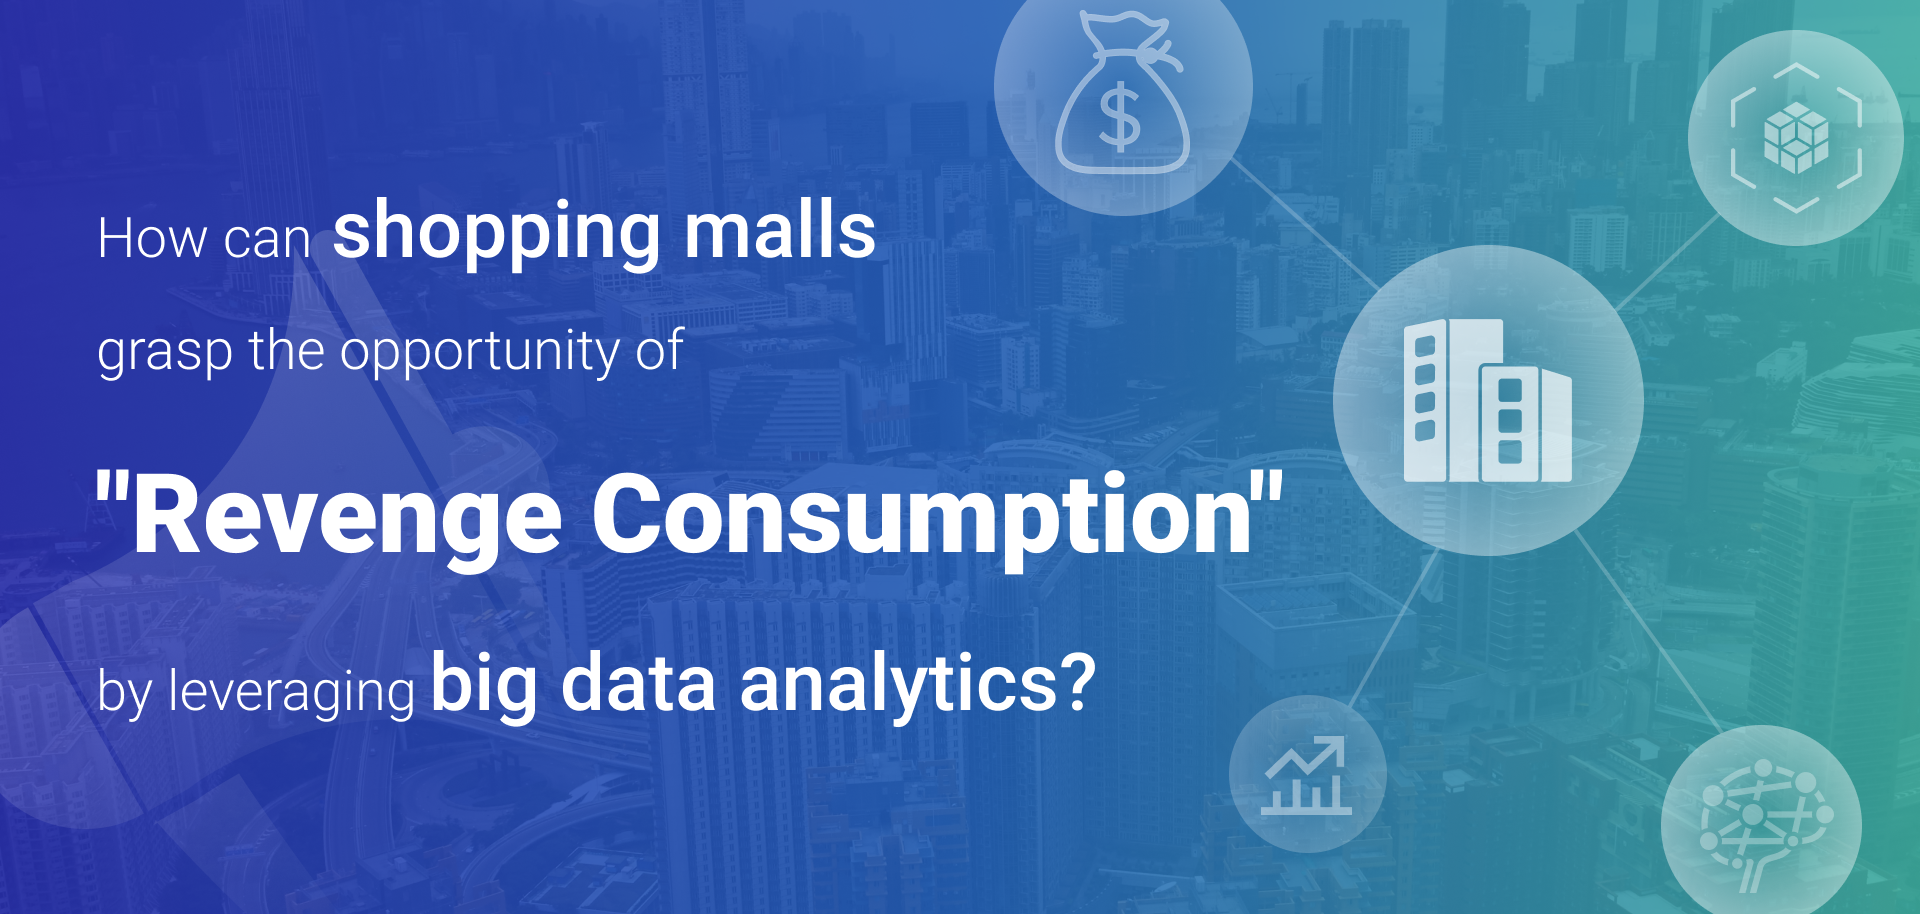 "How can shopping malls grasp the opportunity of ""Revenge Consumption"" by leveraging big data analytics?"